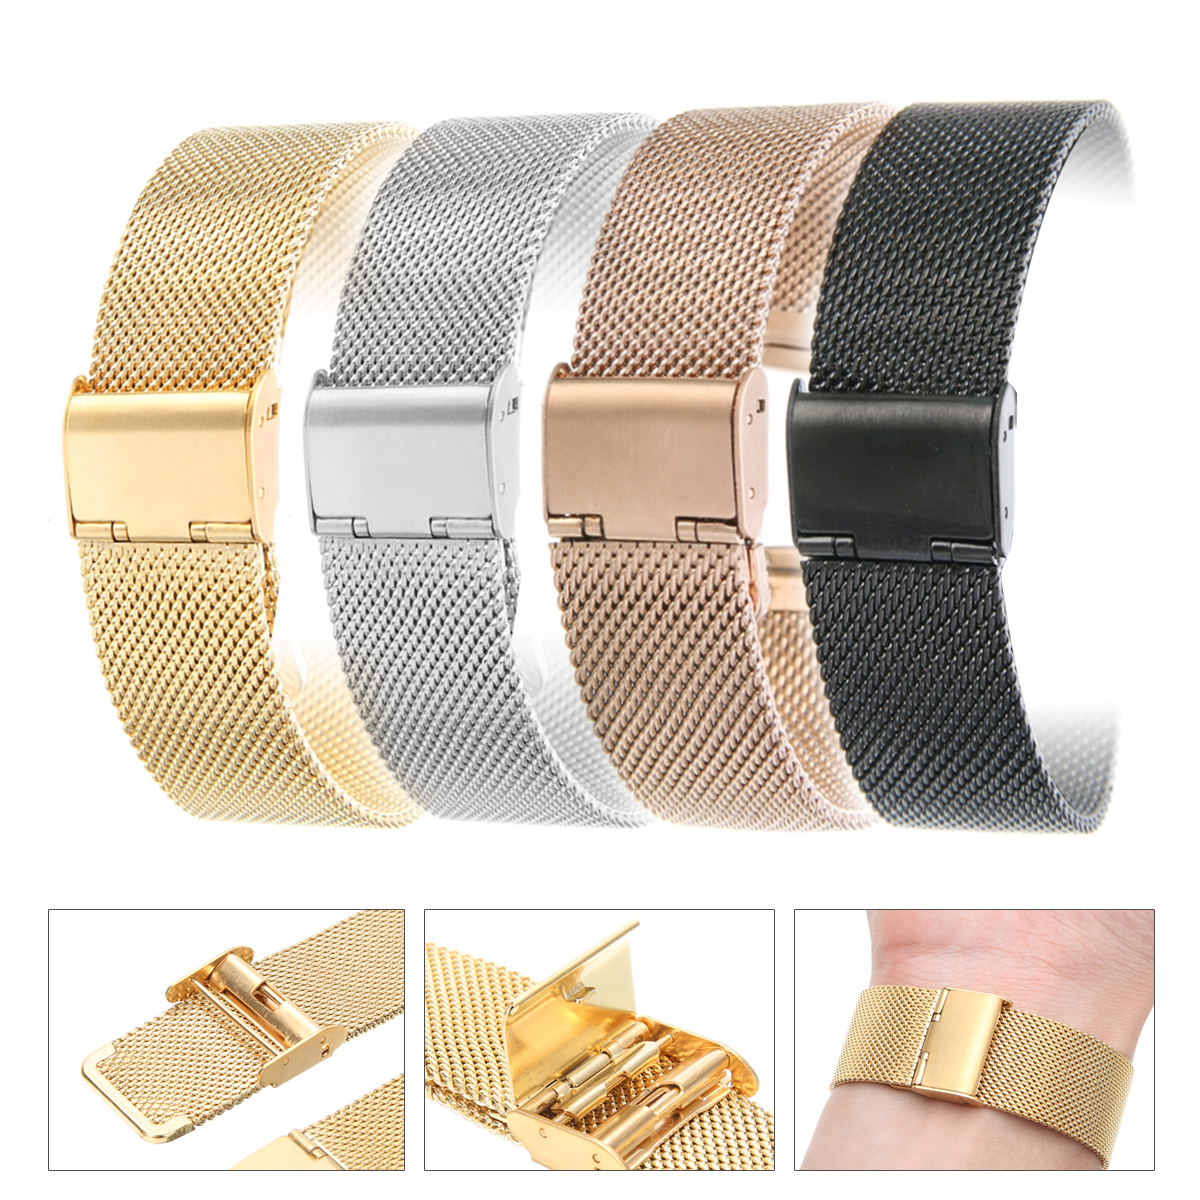 12mm/14mm/16mm/18mm/20mm/22mm/24mm Stainless Steel Watch Strap Straight End Bracelet Mesh Buckle Watch Band 4 Colors Shellhard new watch band 14mm 16mm 18mm 20mm 22mm 24mm 26mm black stainless steel watch band strap straight end bracelet